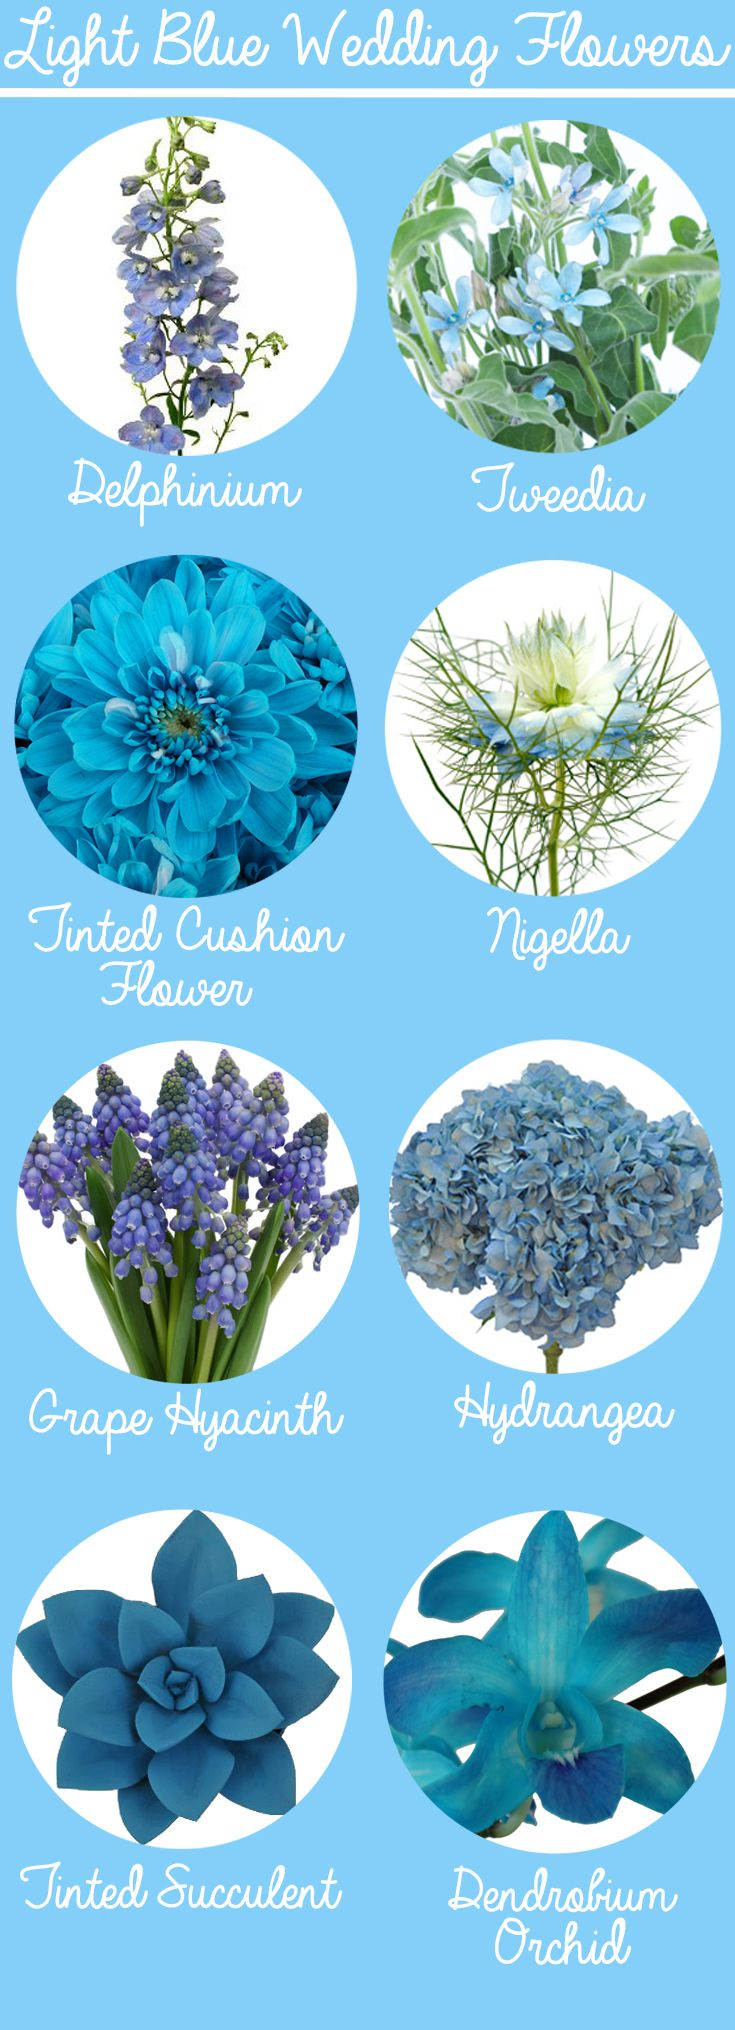 Shop For Flowers By Color At Fiftyflowers Com Blue Wedding